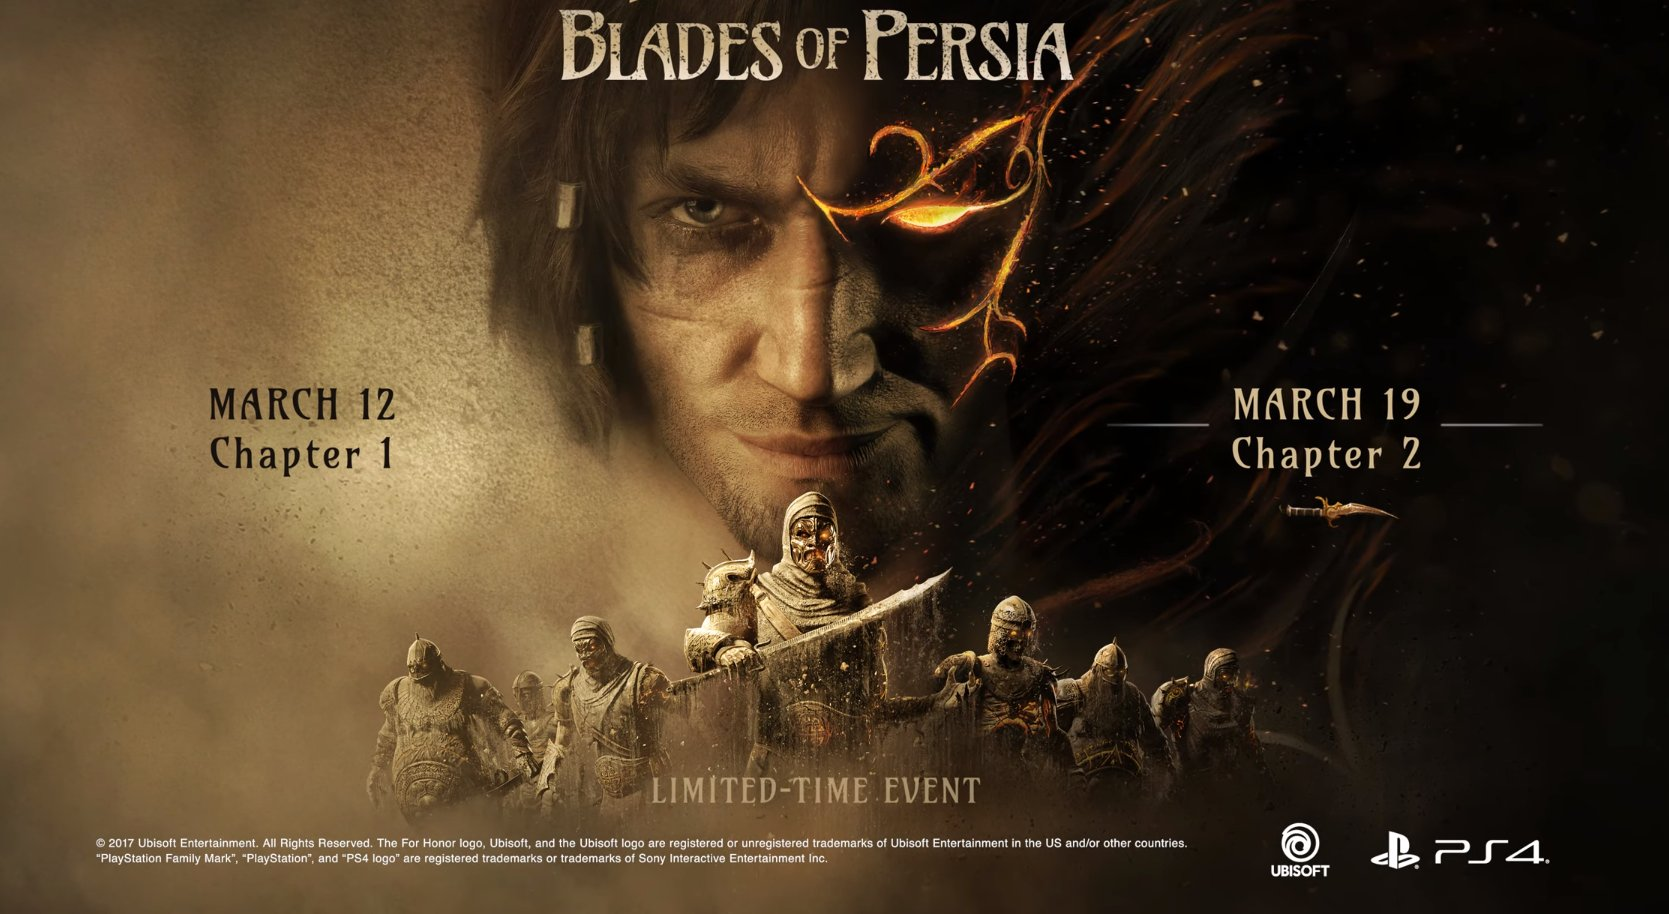 Prince of Persia For Honor Event